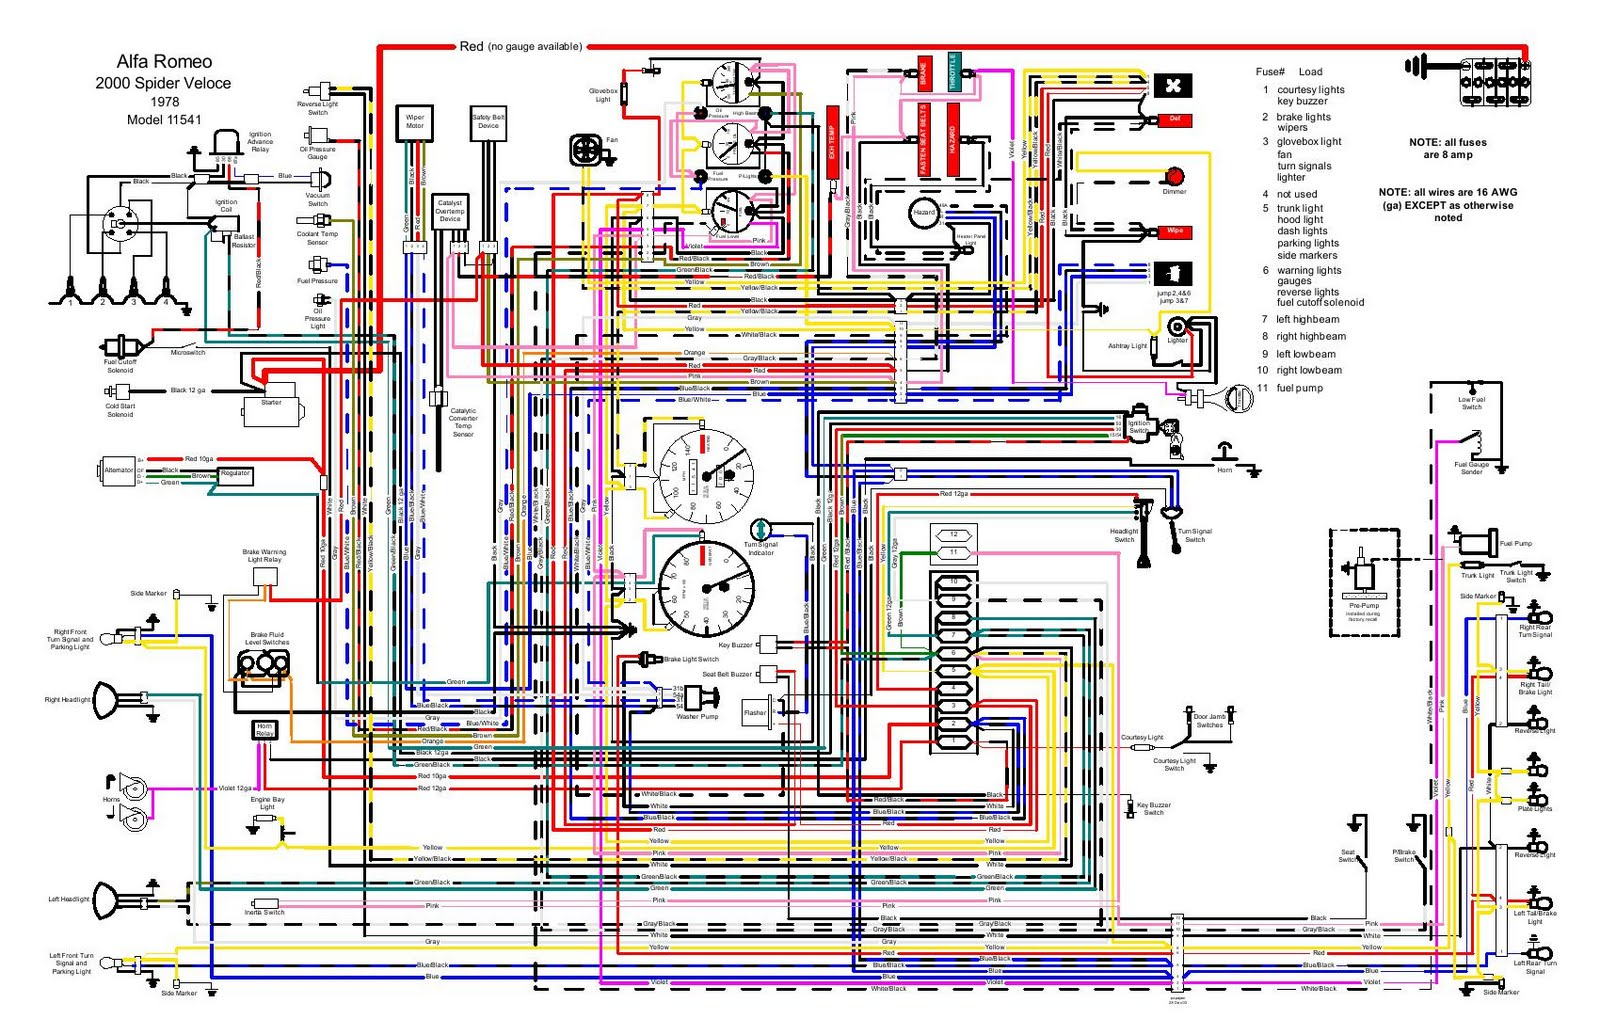 wiring diagram for 1978 alfa romeo spider CHaEWjz wiring diagrams cars readingrat net wiring schematics for cars at soozxer.org